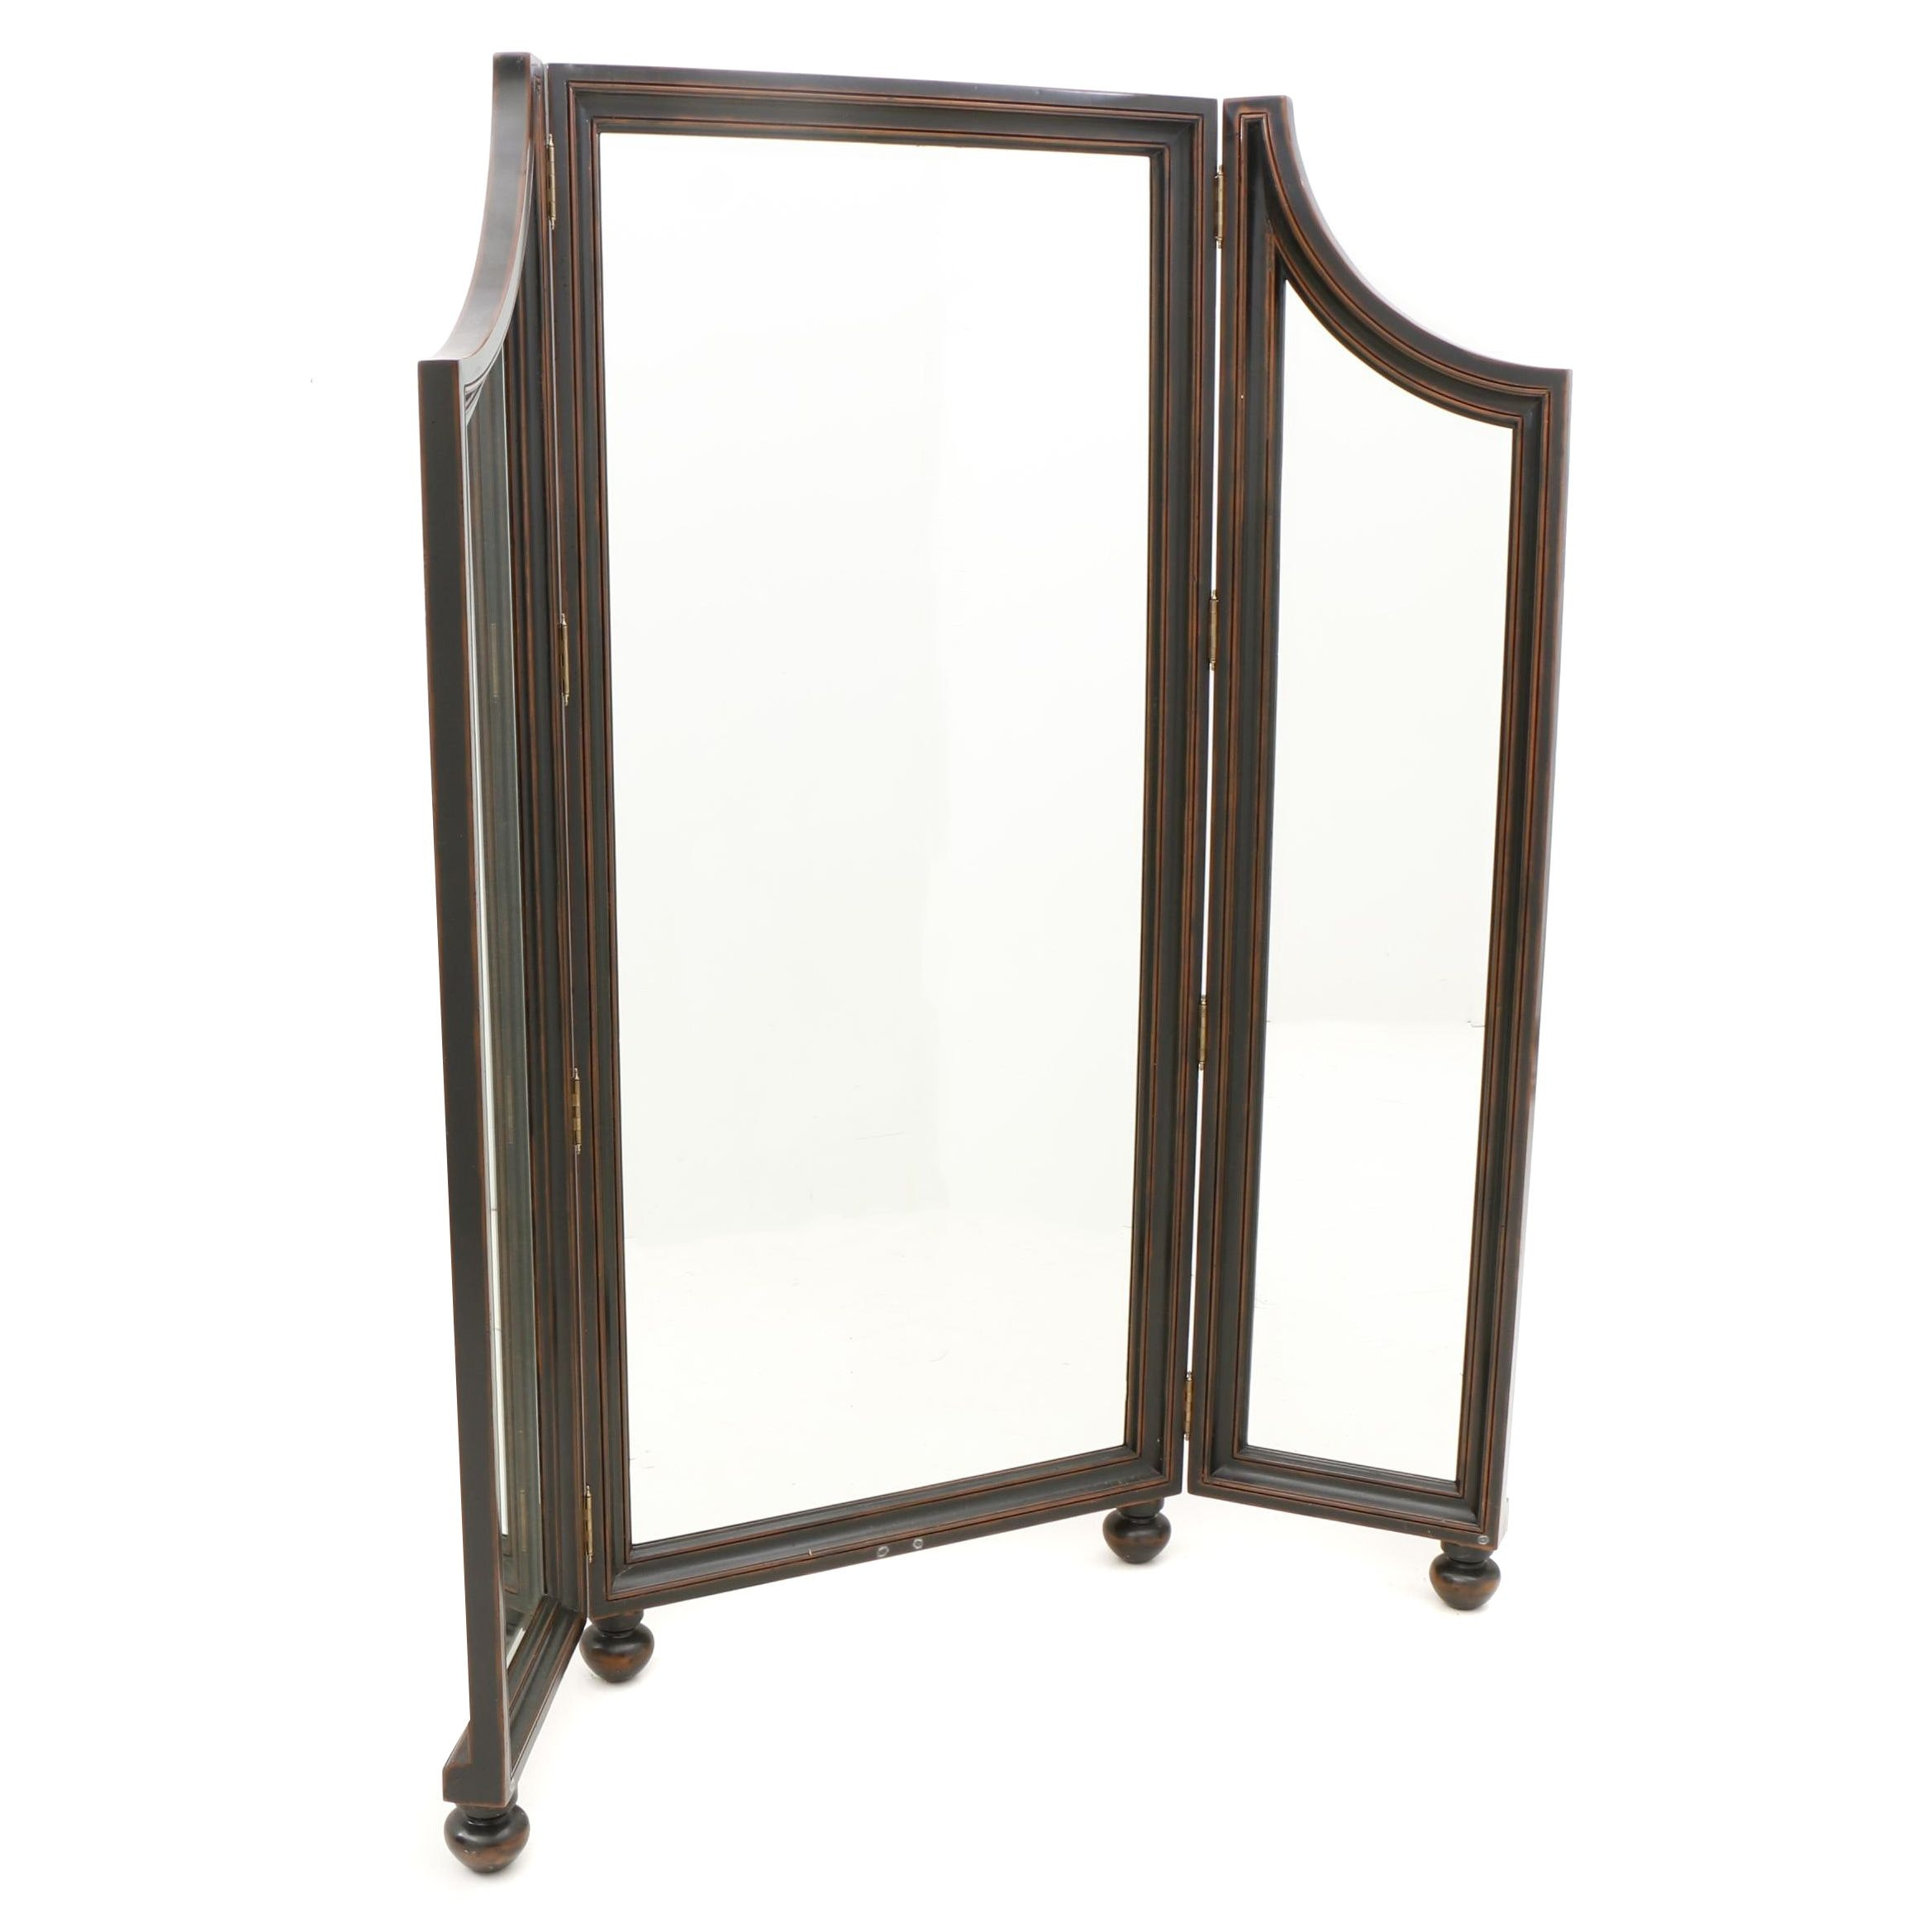 Full-Length Winged Dressing Mirror